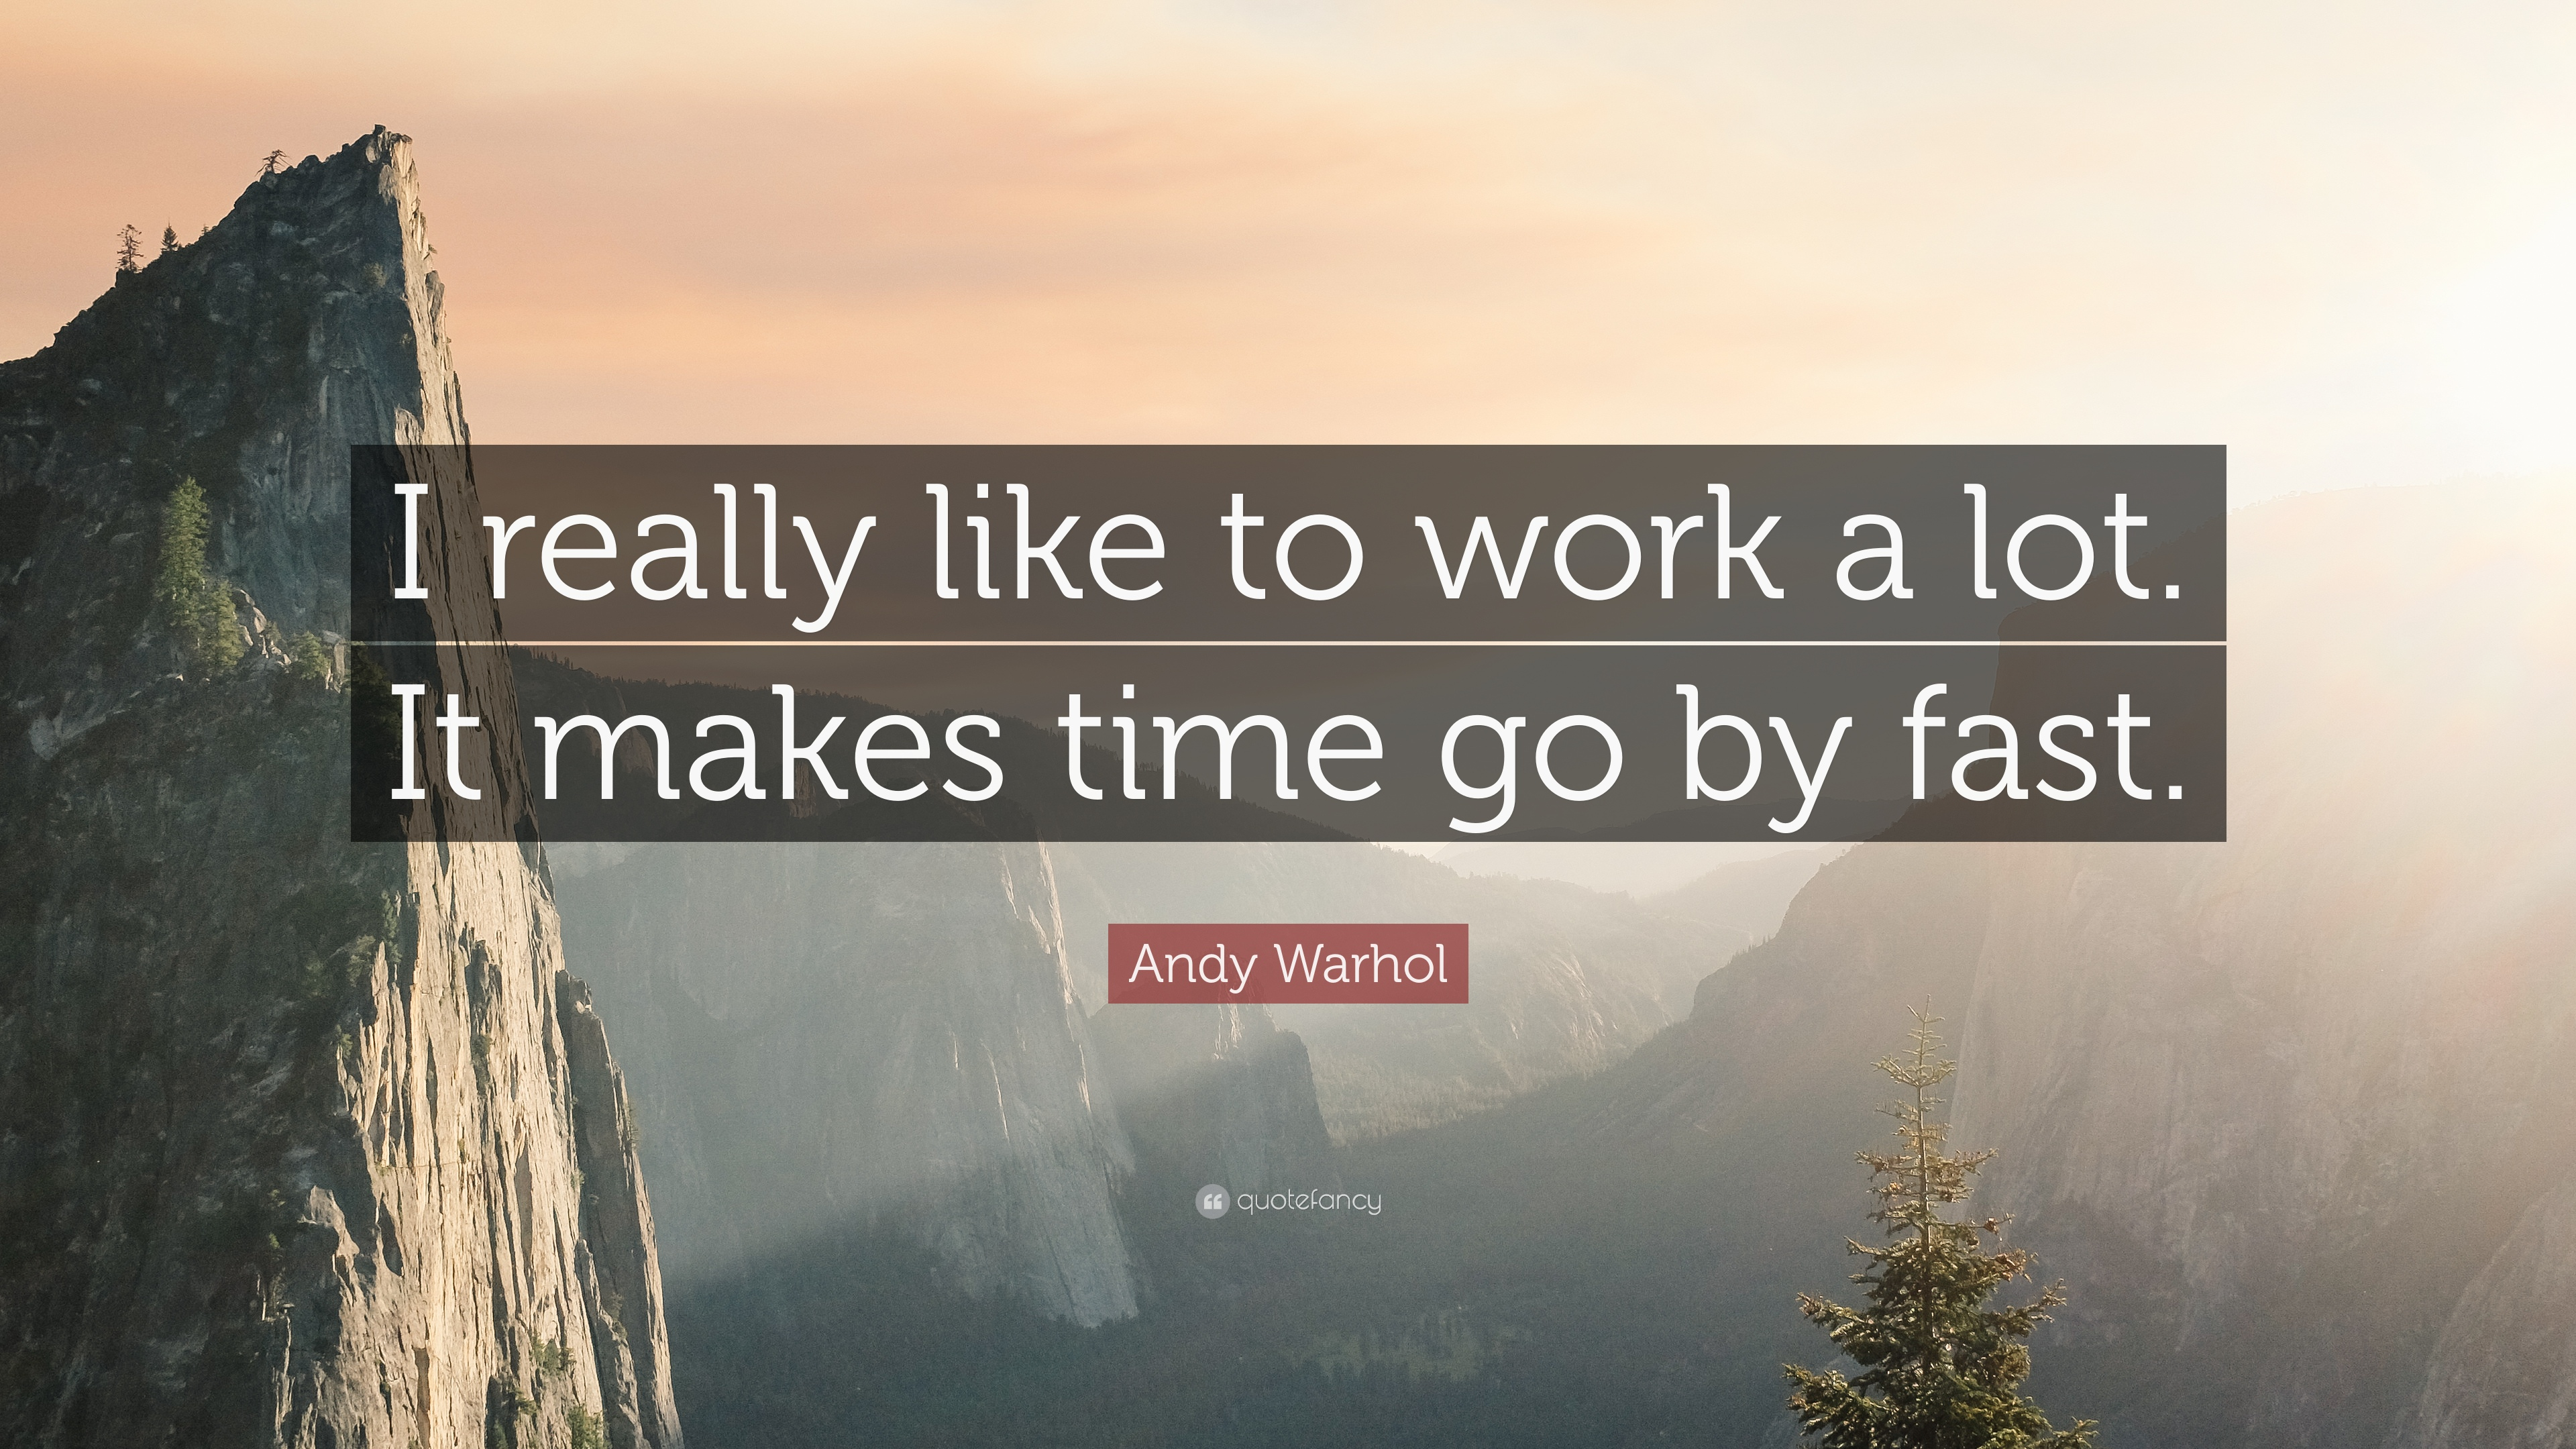 Andy Warhol Quotes (100 Wallpapers)